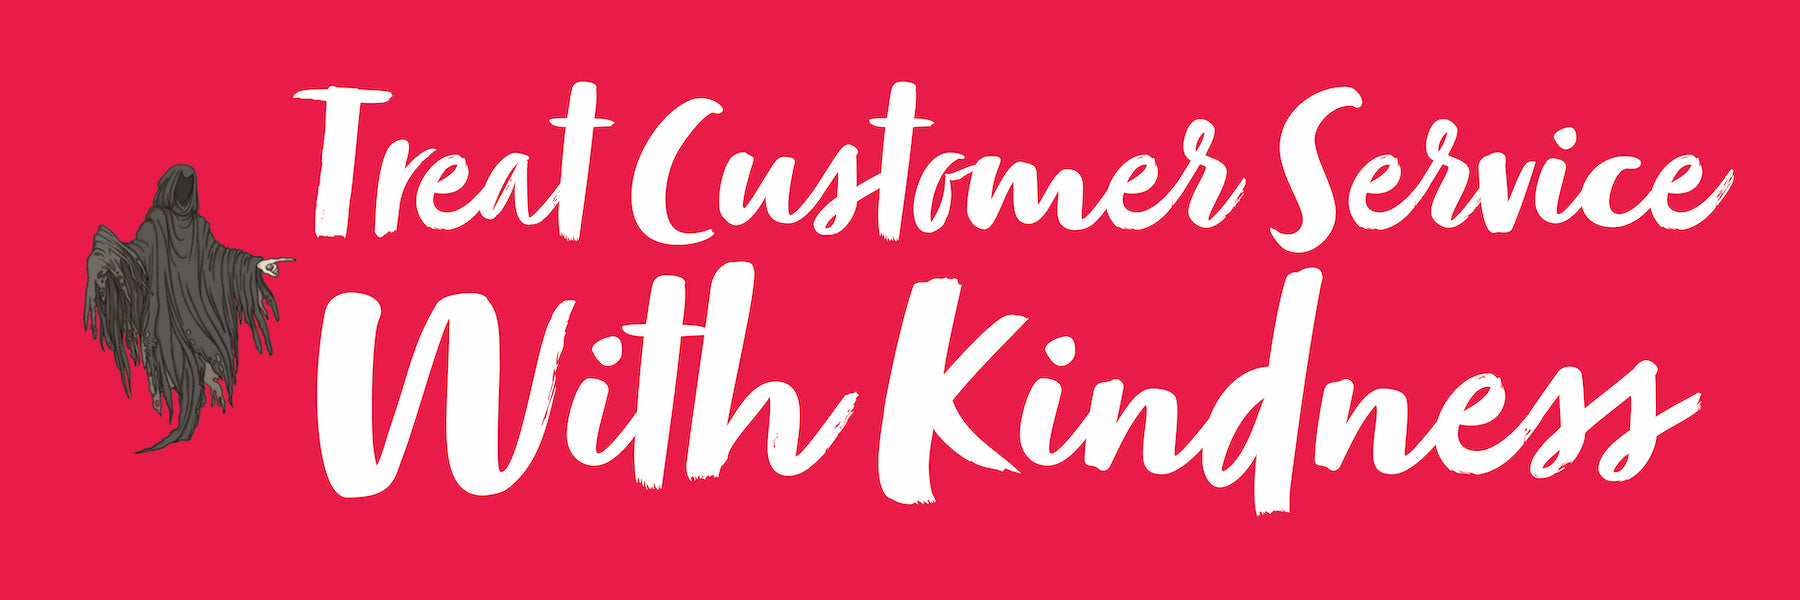 Treat Customer Service With Kindness